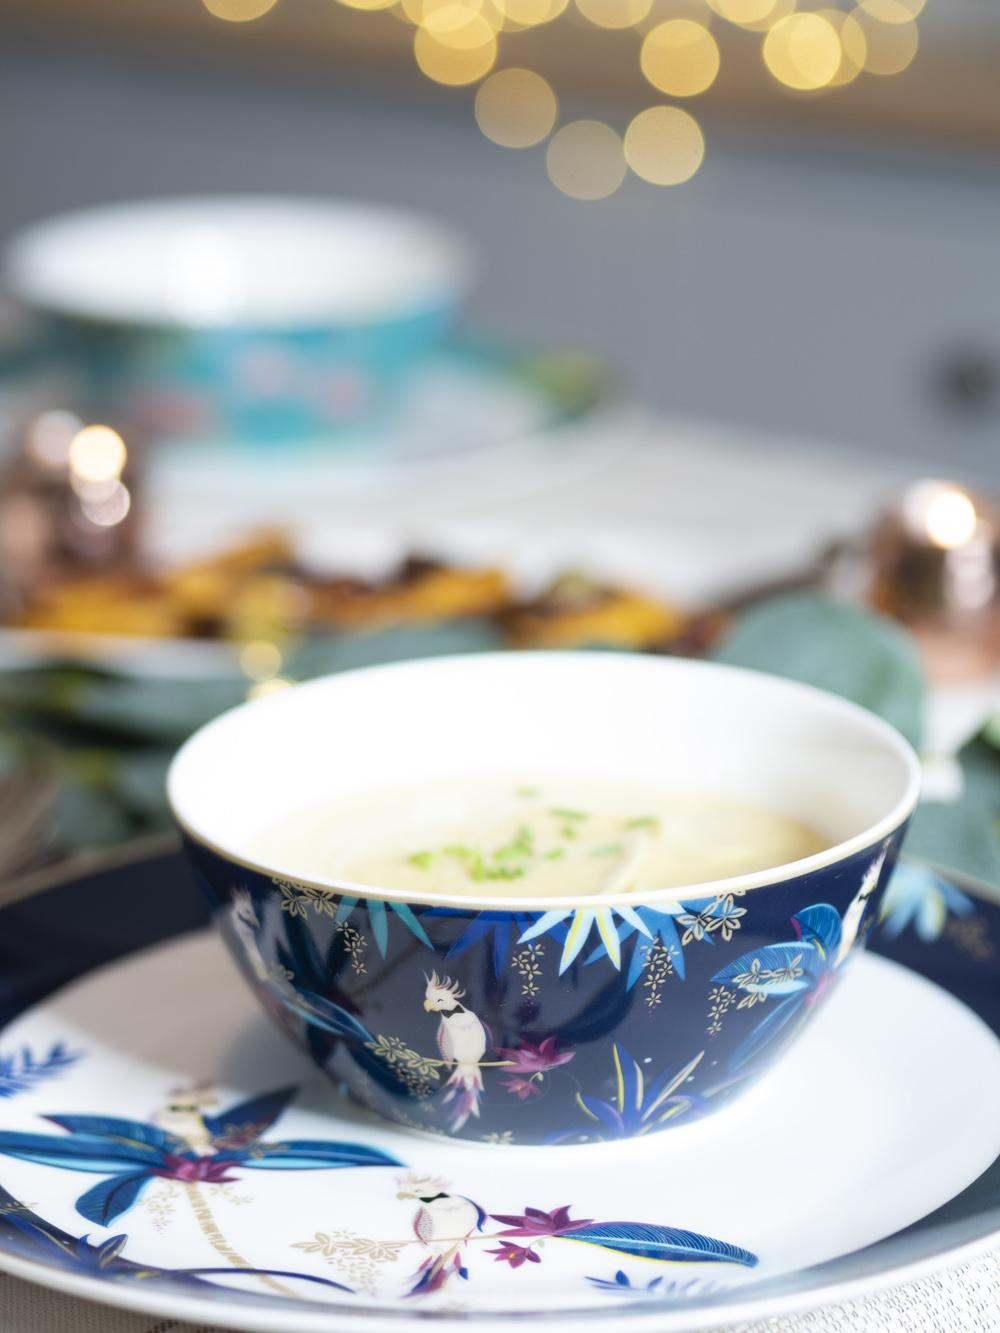 Festive leek soup in a pretty decorated dinnerware bowl from Sarah Miller London featuring cockatoos